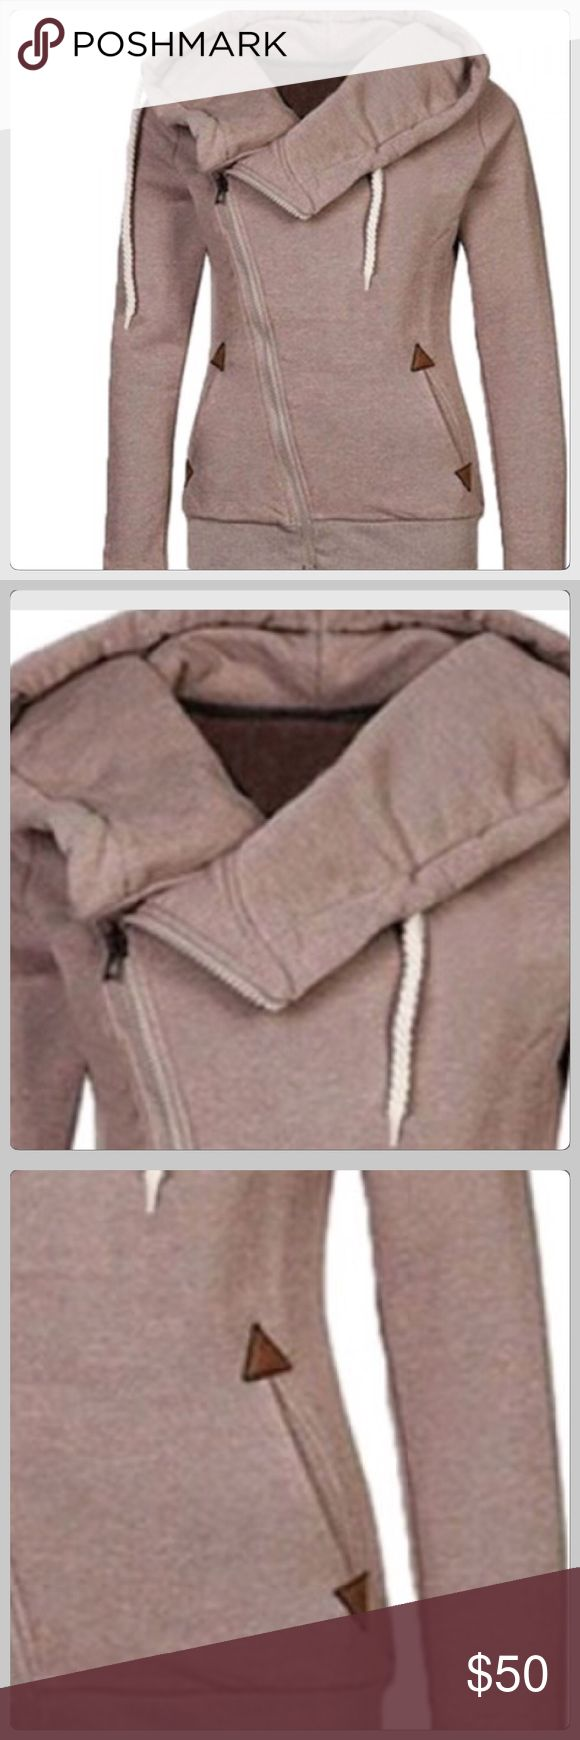 JUST IN! Slant Zipper Khaki Tan Hoodie Sweatshirt This is a nice thick sweatshirt with some pizazz to it! The sipping is a slanted on! The pockets are decorative! It is very cozy and warm! I love this one! Bust 38 Boutique Tops Sweatshirts & Hoodies